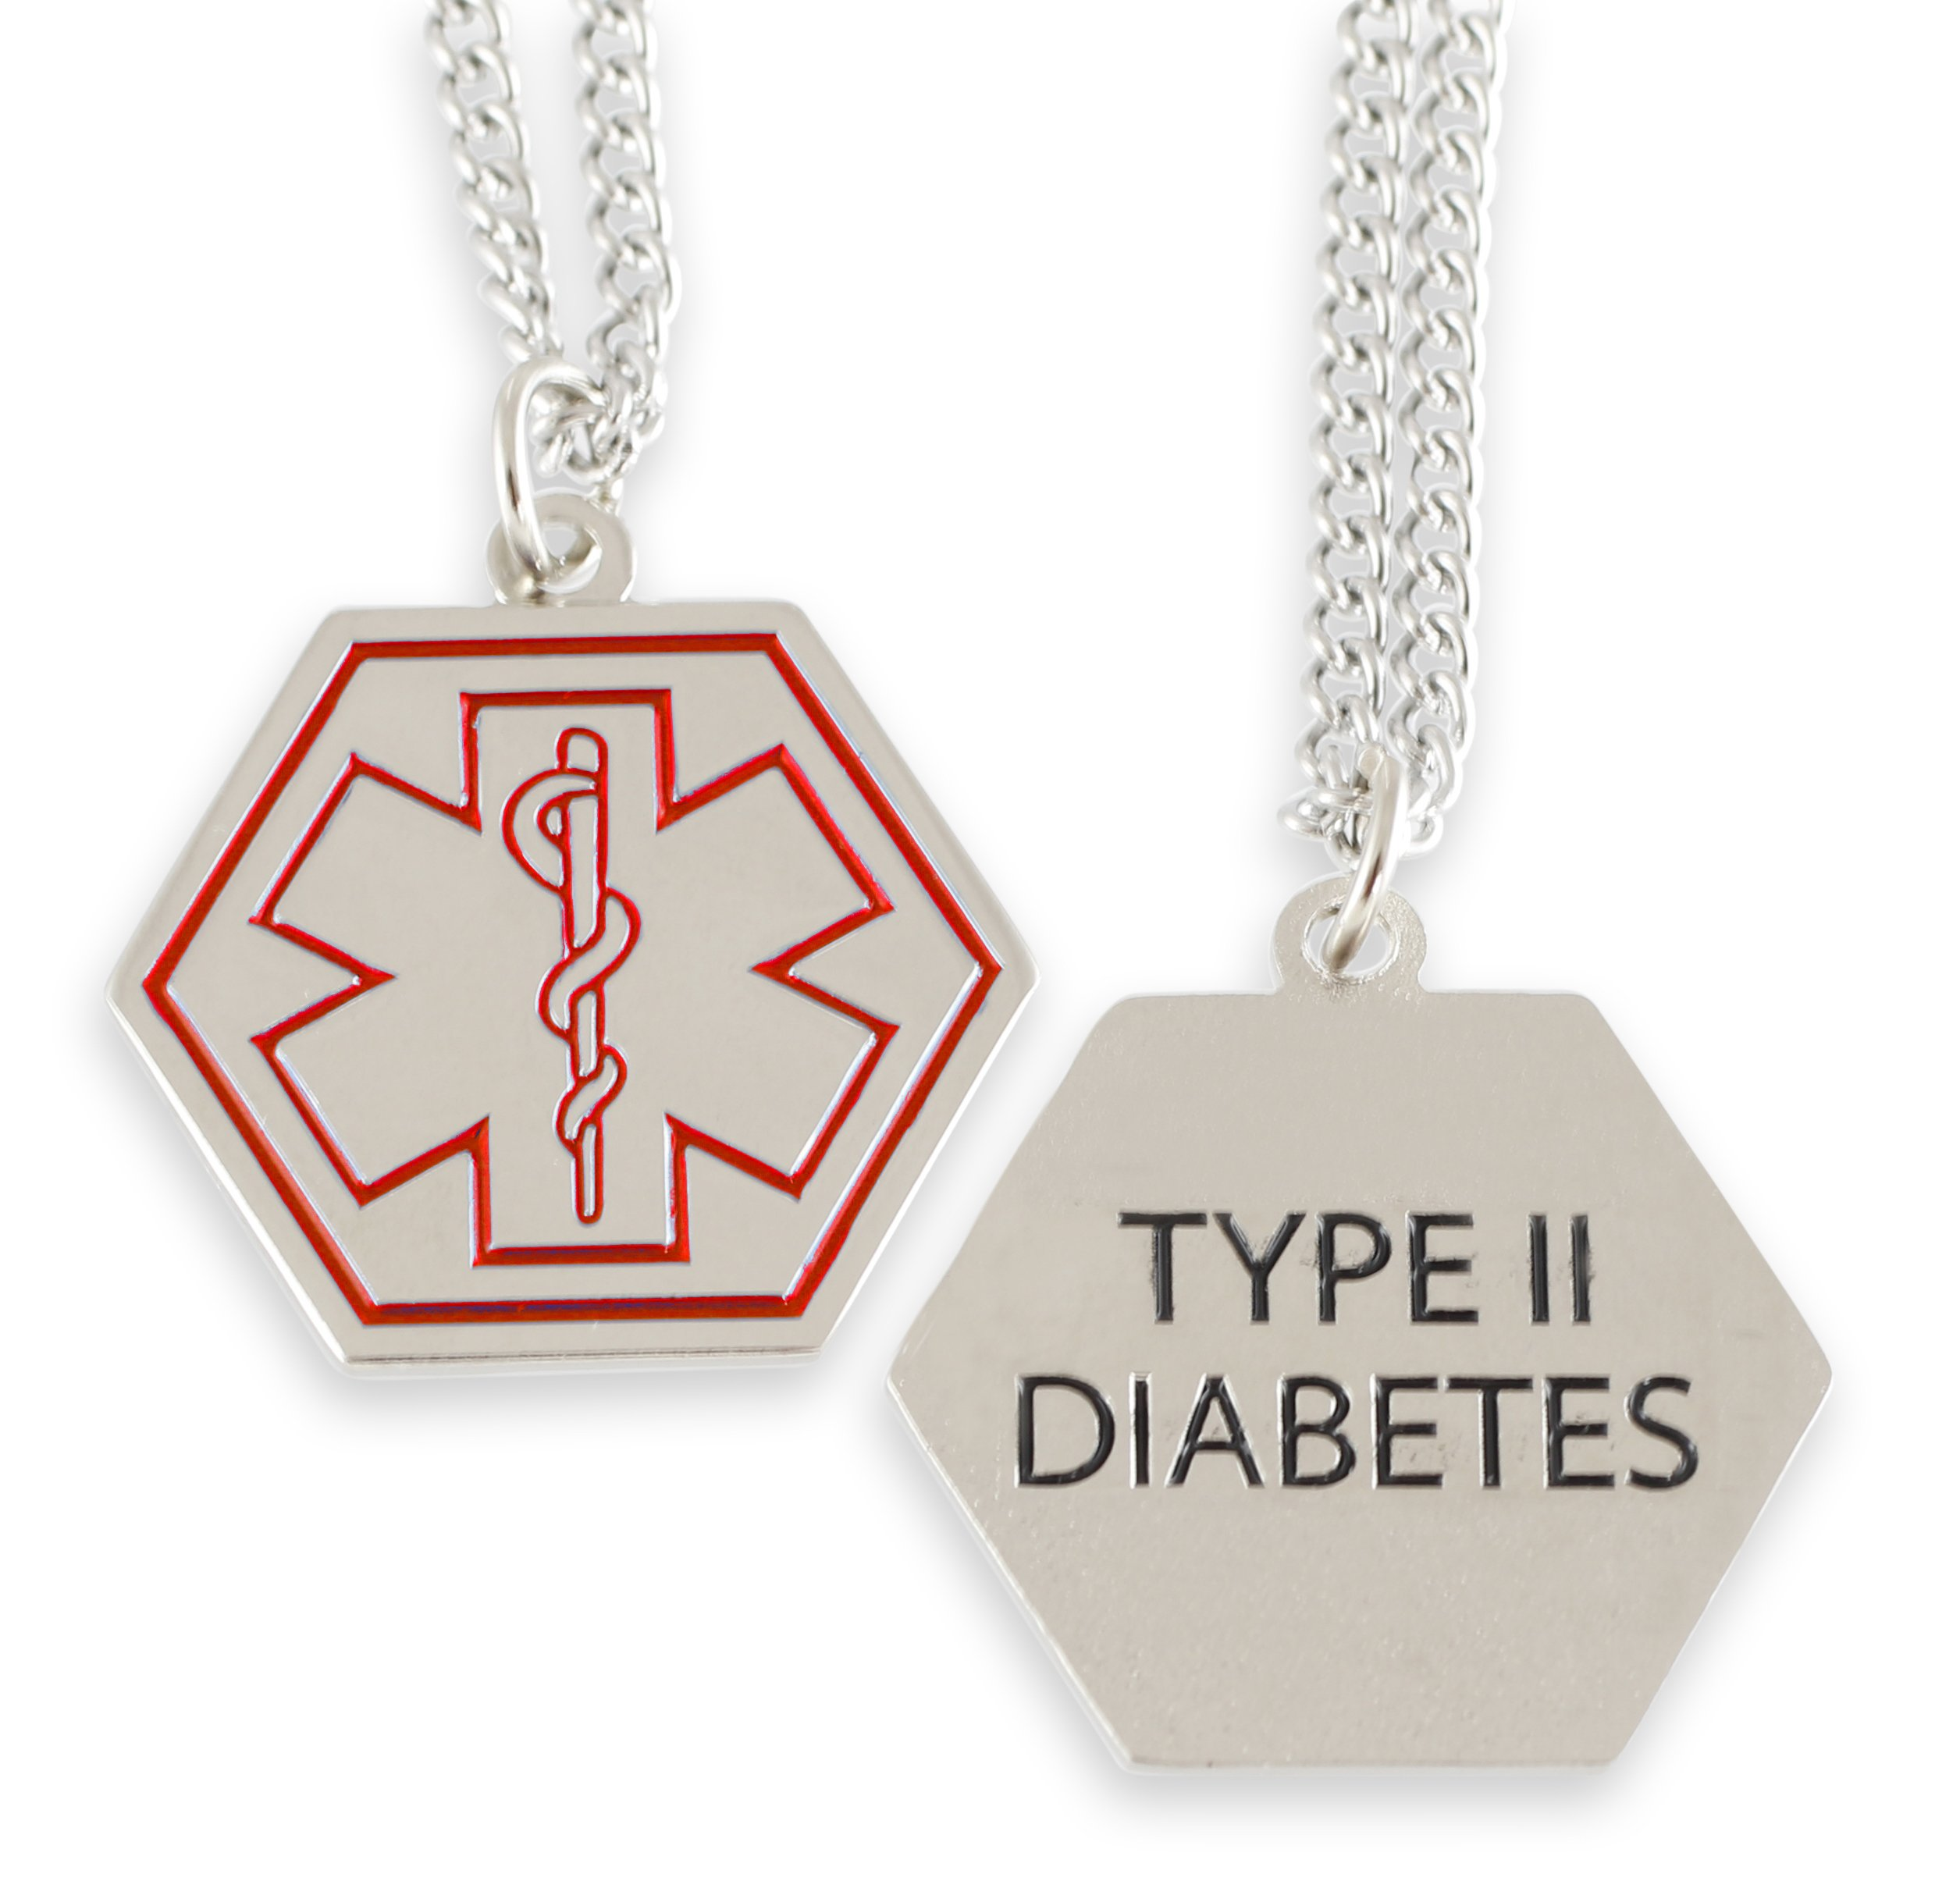 Type 2 Diabetes Medical Alert ID Stainless Steel Pendant Necklace with 26'' Chain (Silver Necklace - Red Star Of Life)